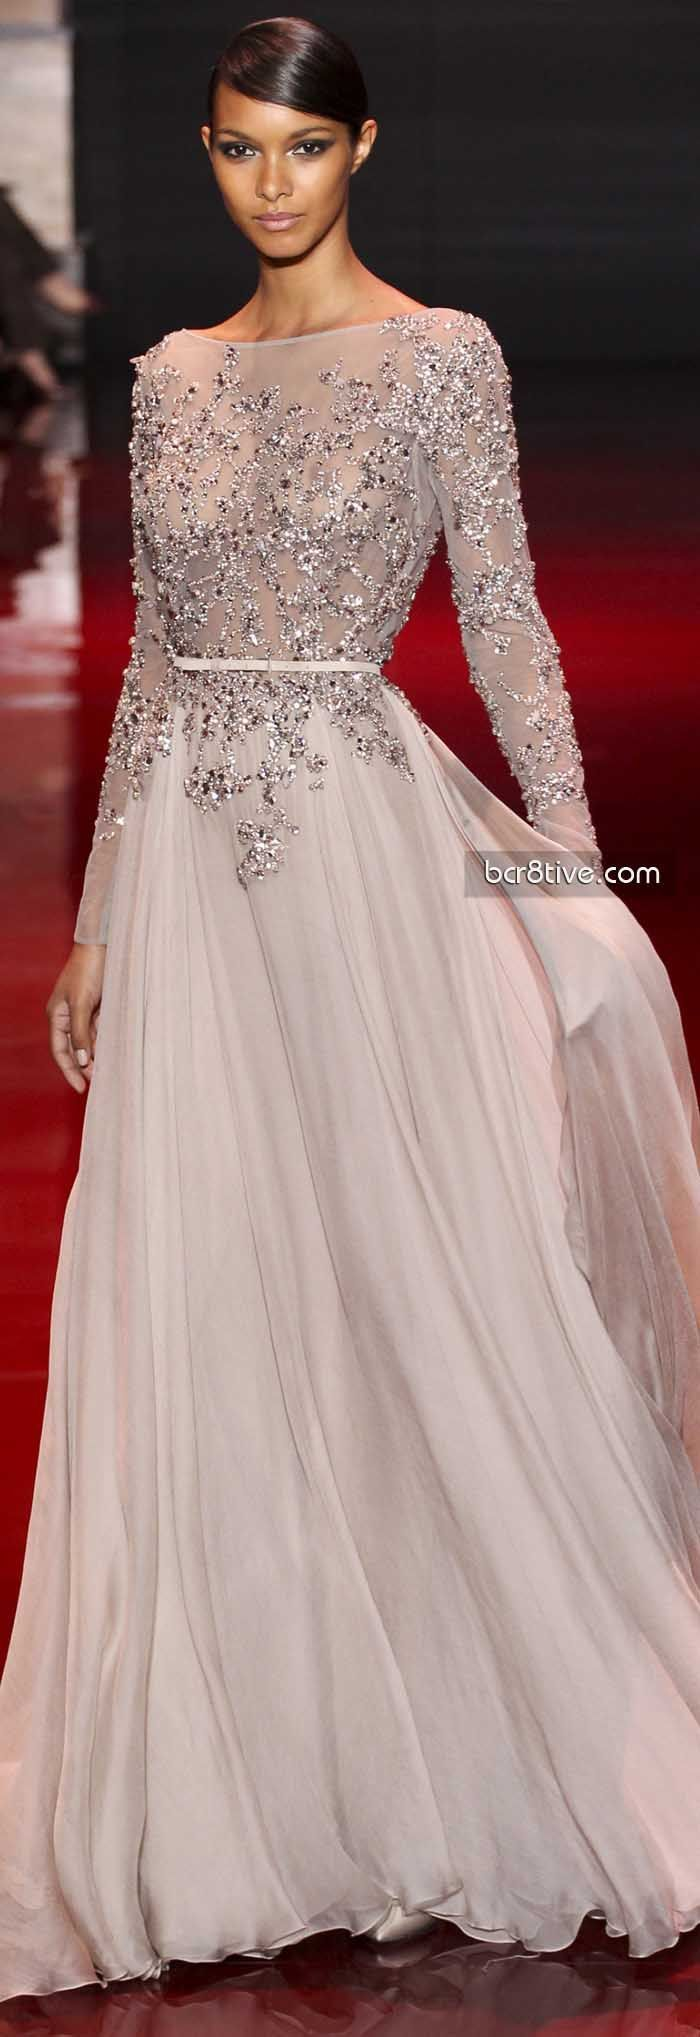 Elie Saab Fw 2017 Haute Couture An Evening In This Gown Would Make Me Feel Like Cinderella